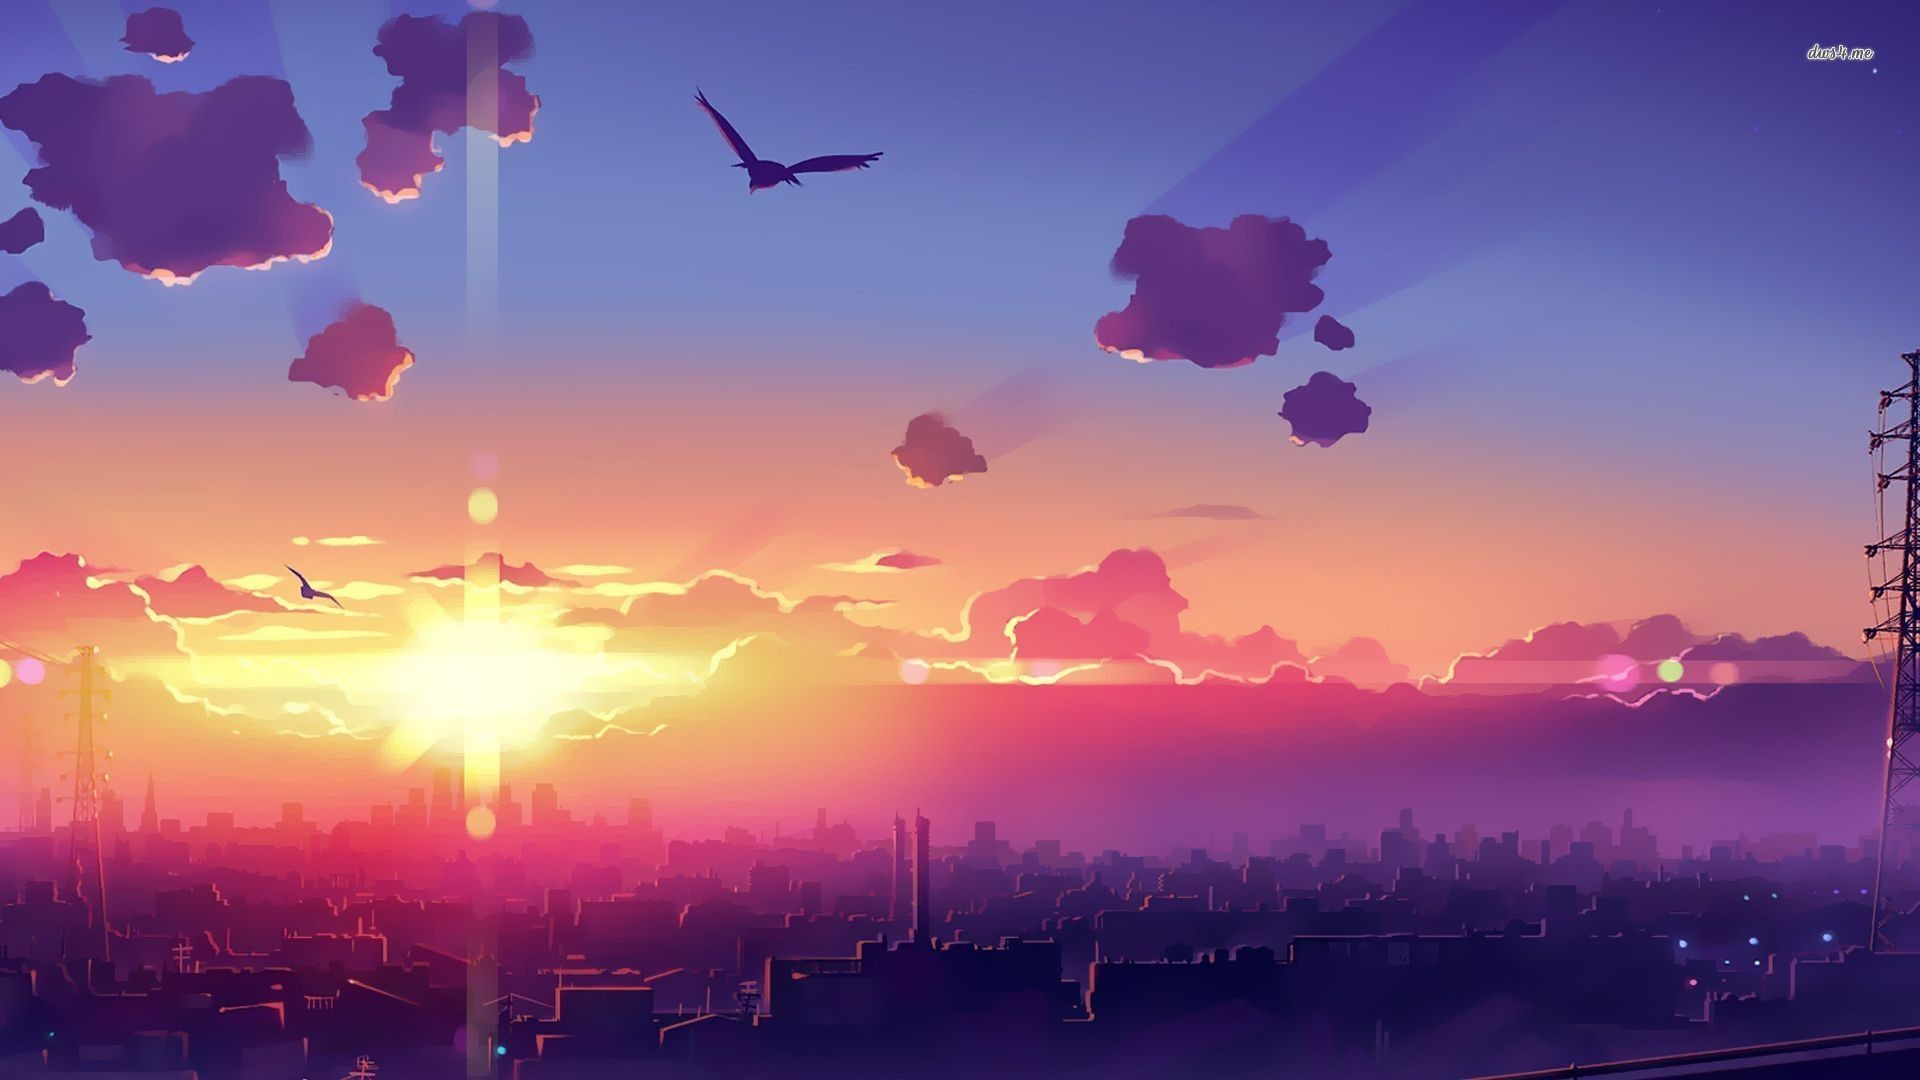 1920x1080, Amazing Sunset Above The City Wallpaper - Anime Background - HD Wallpaper